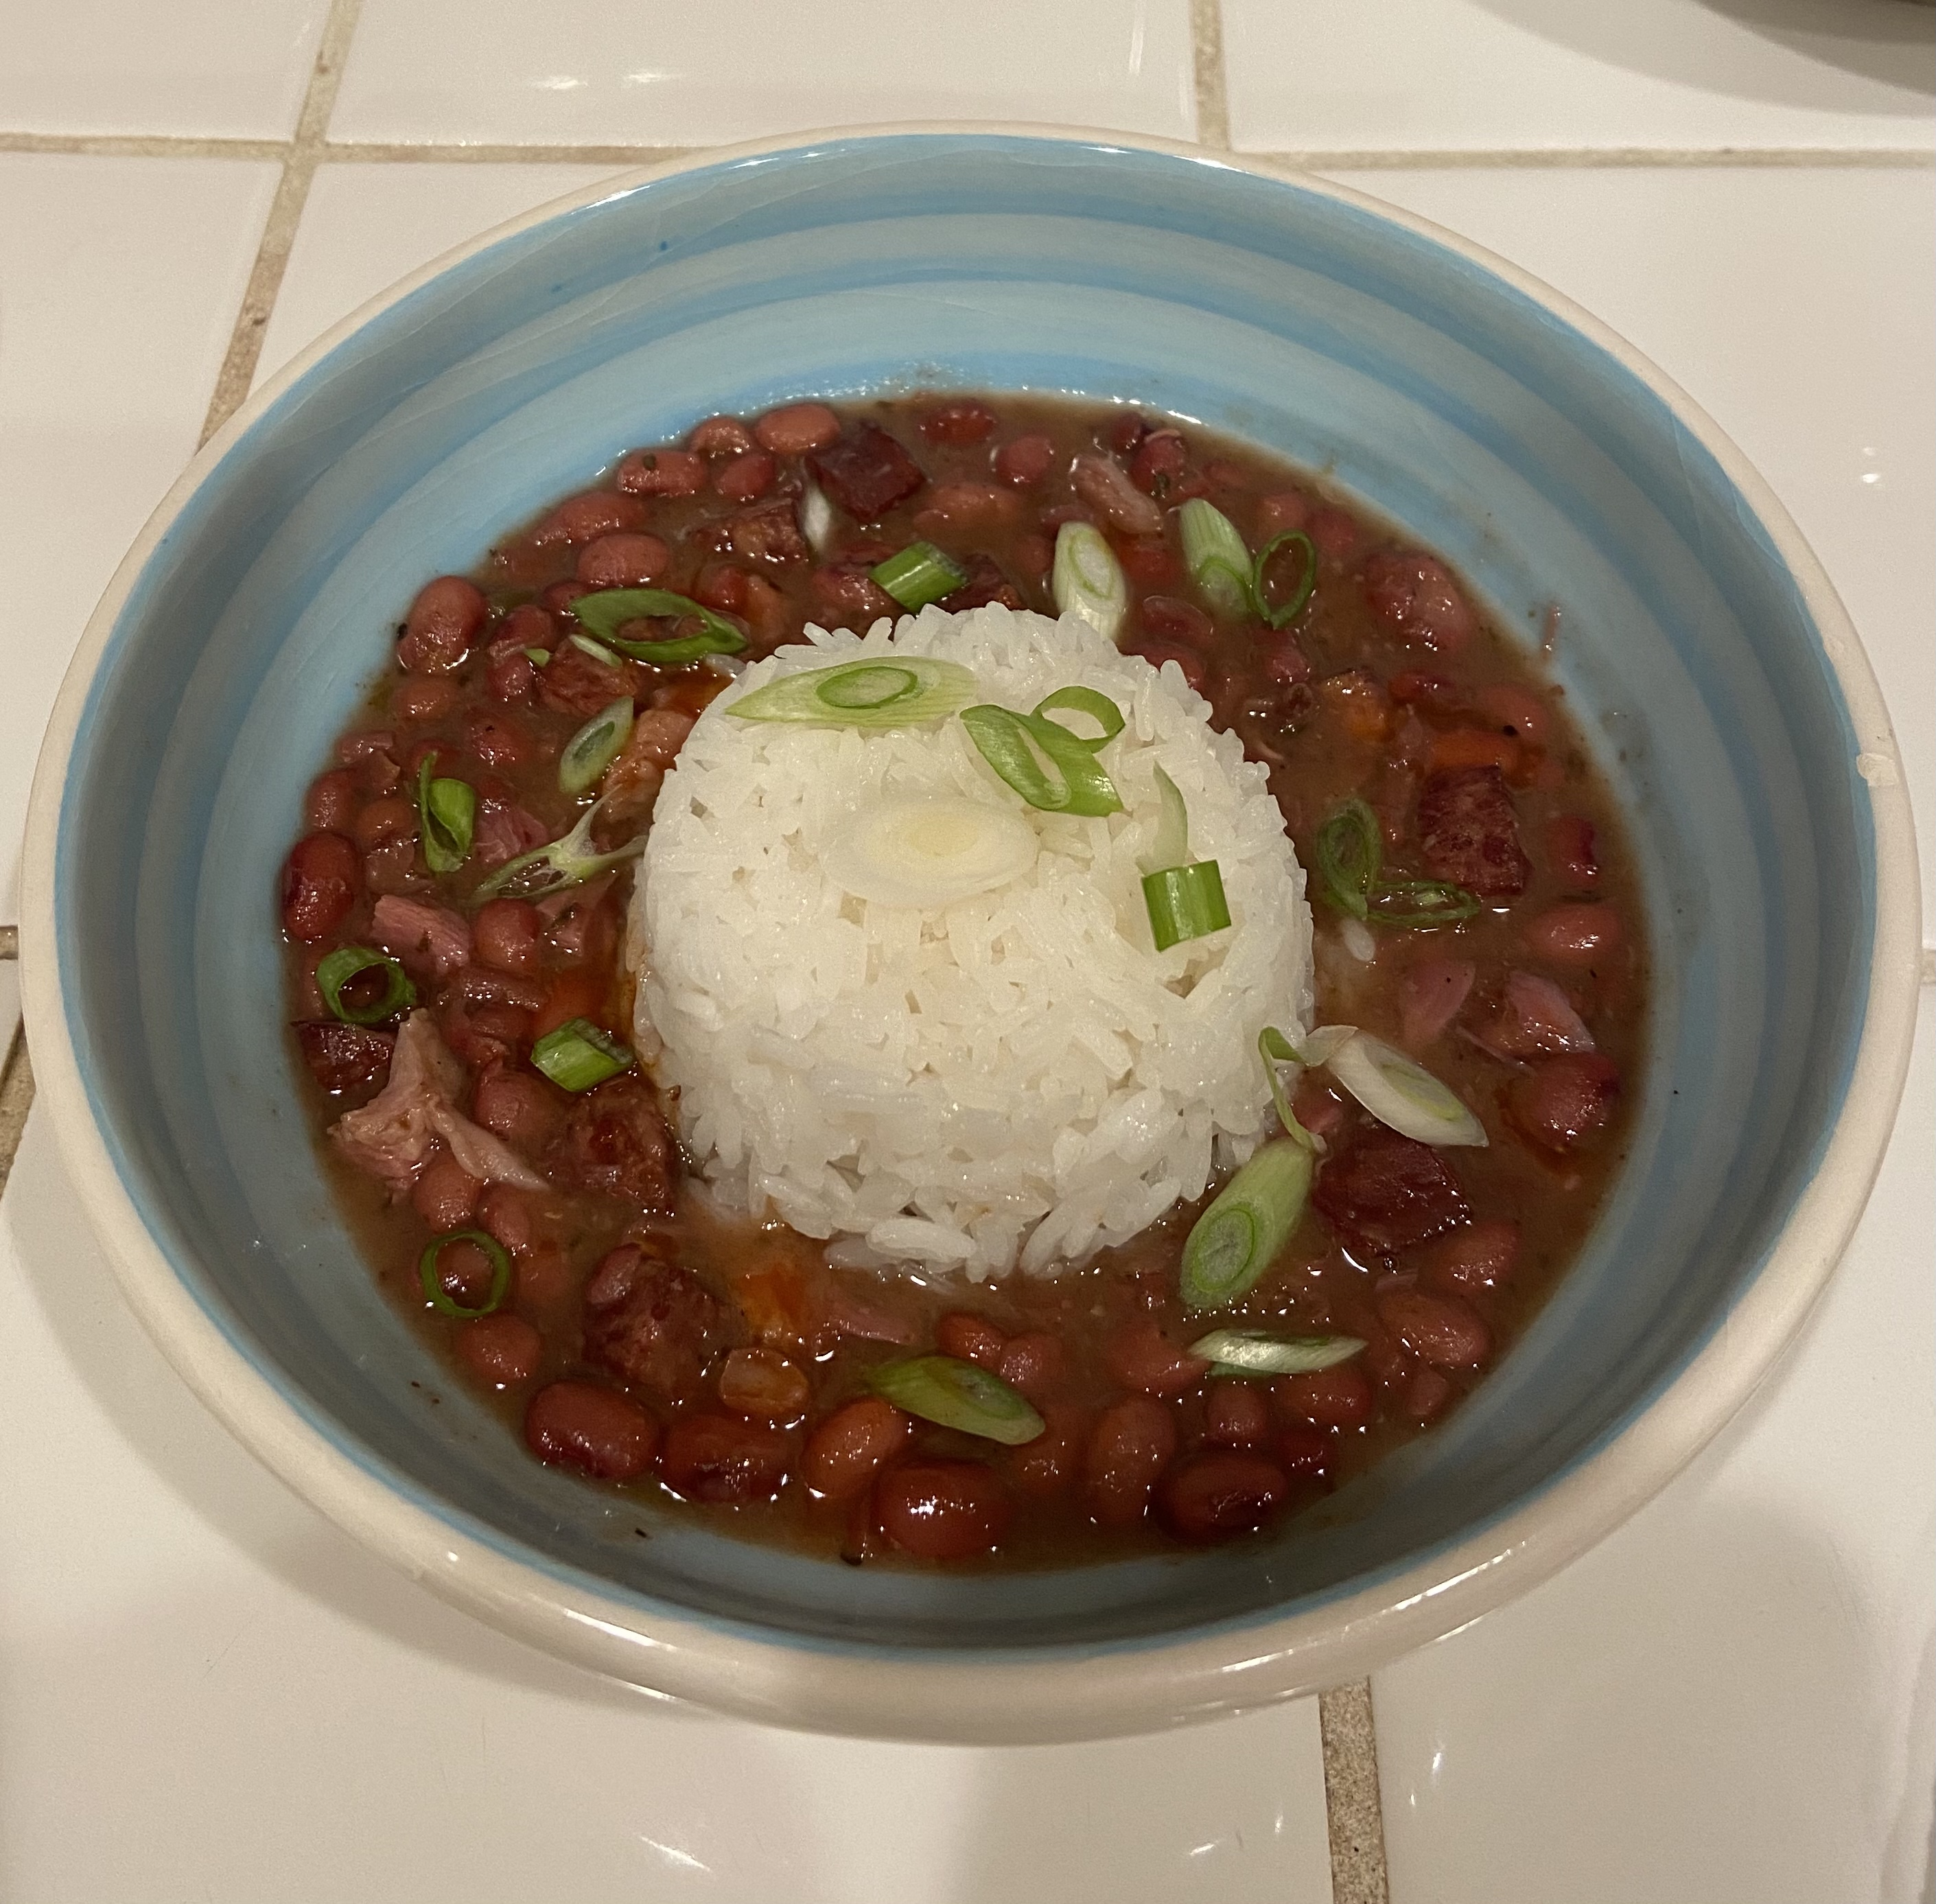 Chef John's Red Beans and Rice